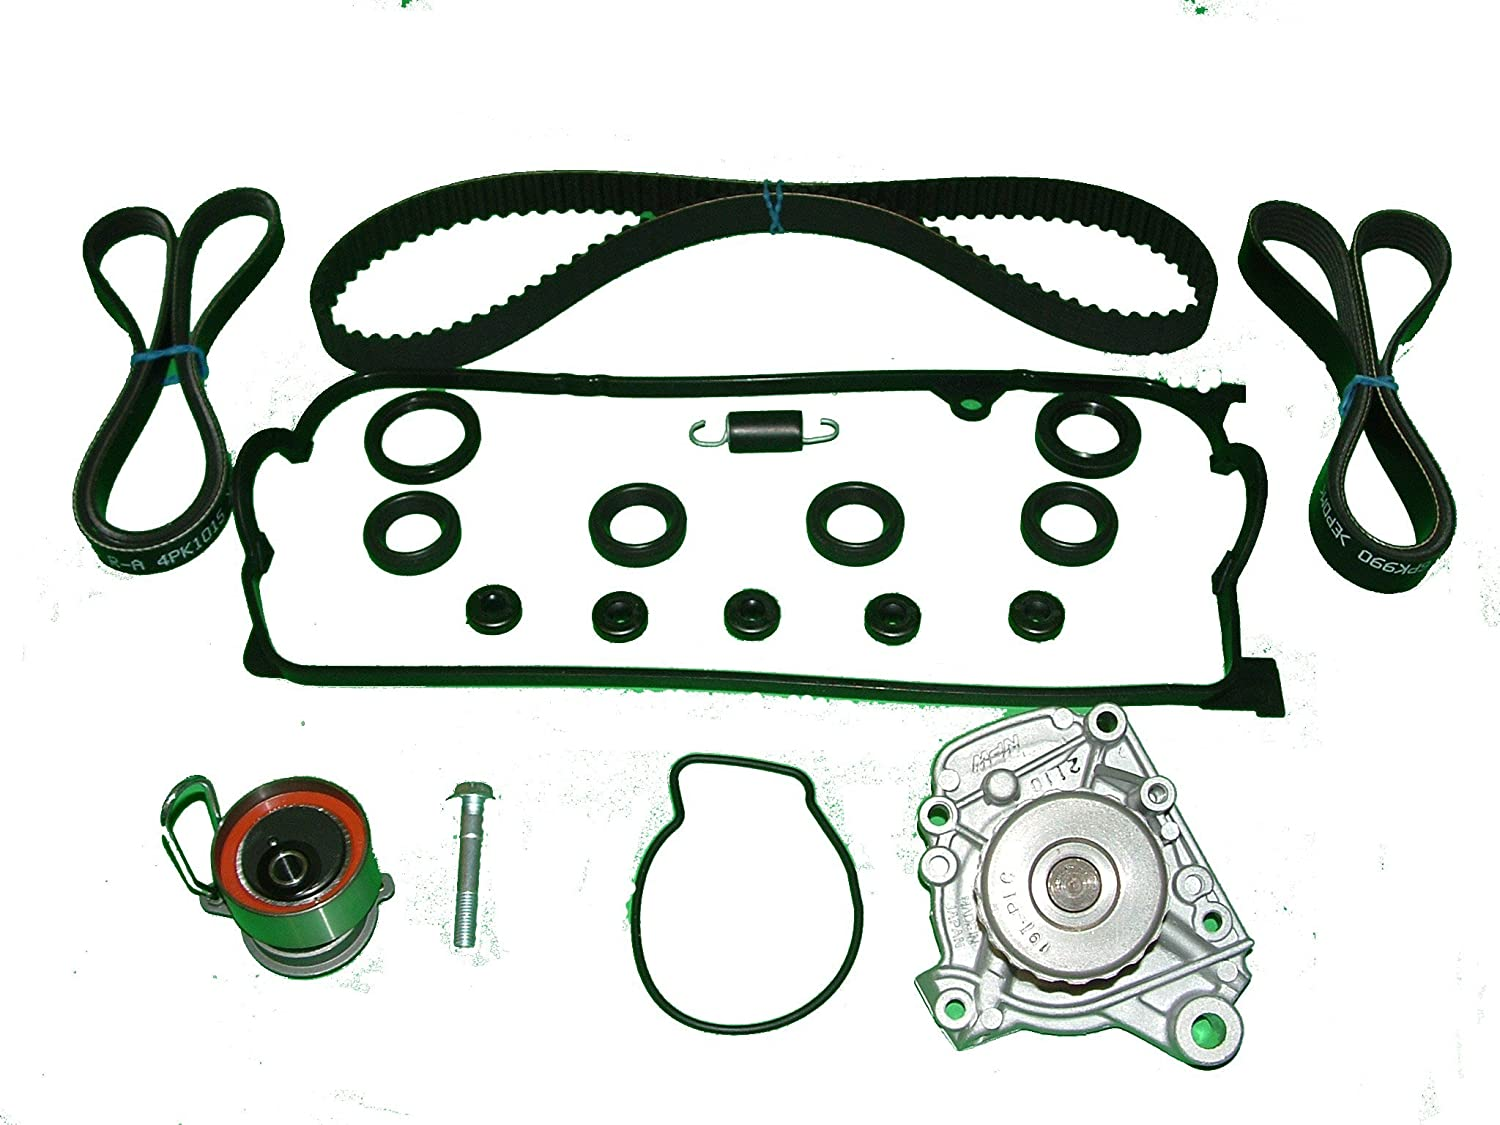 Amazon.com: Timing Belt Kit Honda Civic 2001 to 2005 1.7 LX DX EX WATER PUMP TIMING BELT TWO DRIVE BELTS VALVE COVER GASKET SET SEALS TENSIONER AND SPRING: ...